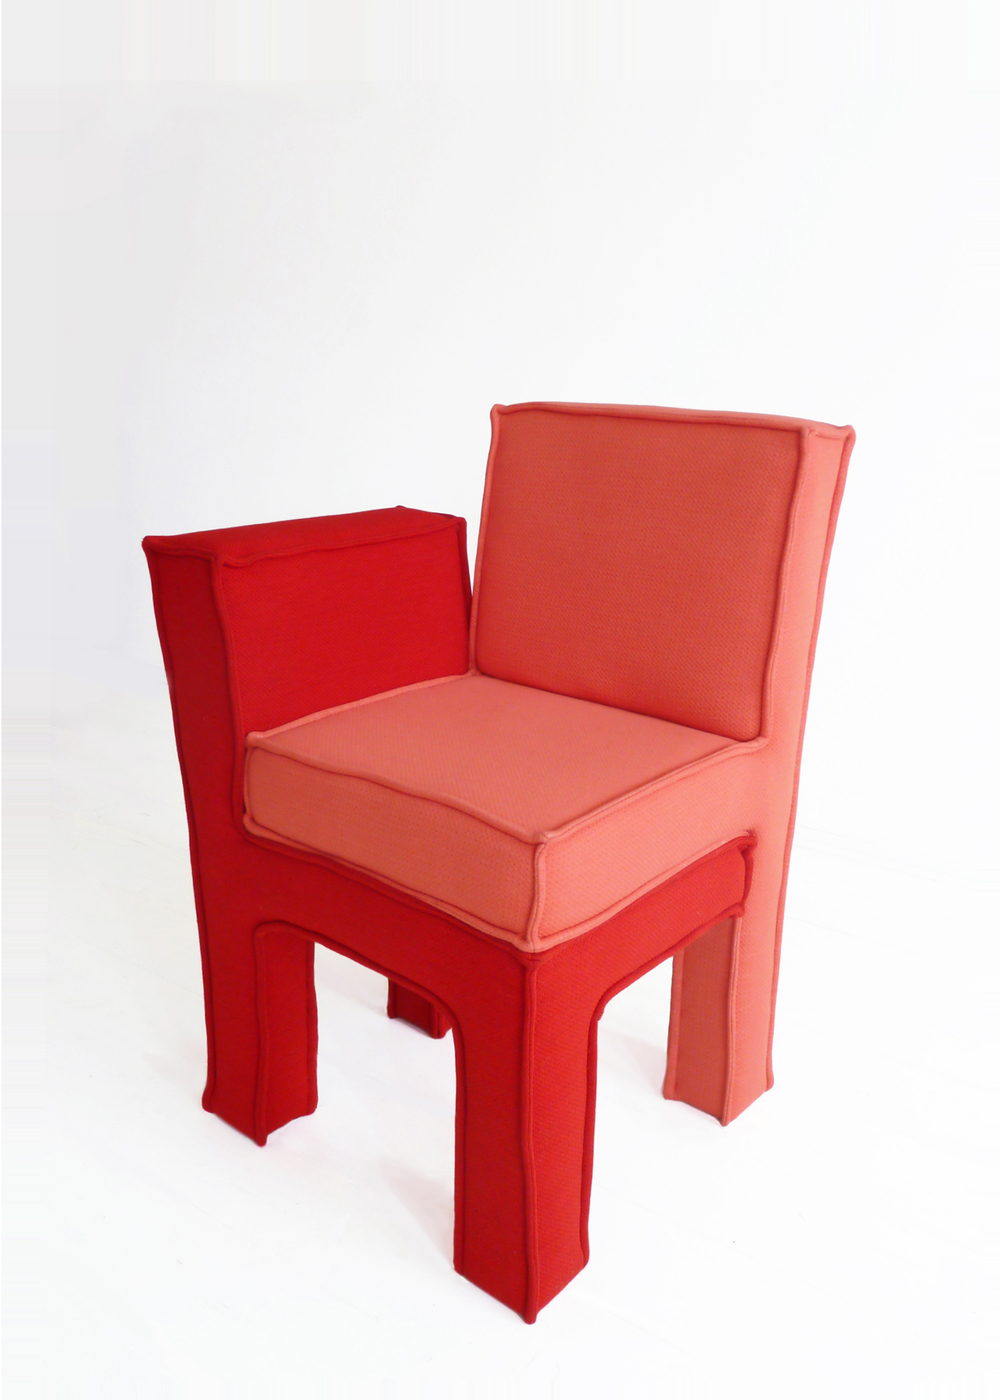 love seat - chair - by annebet philips.jpg